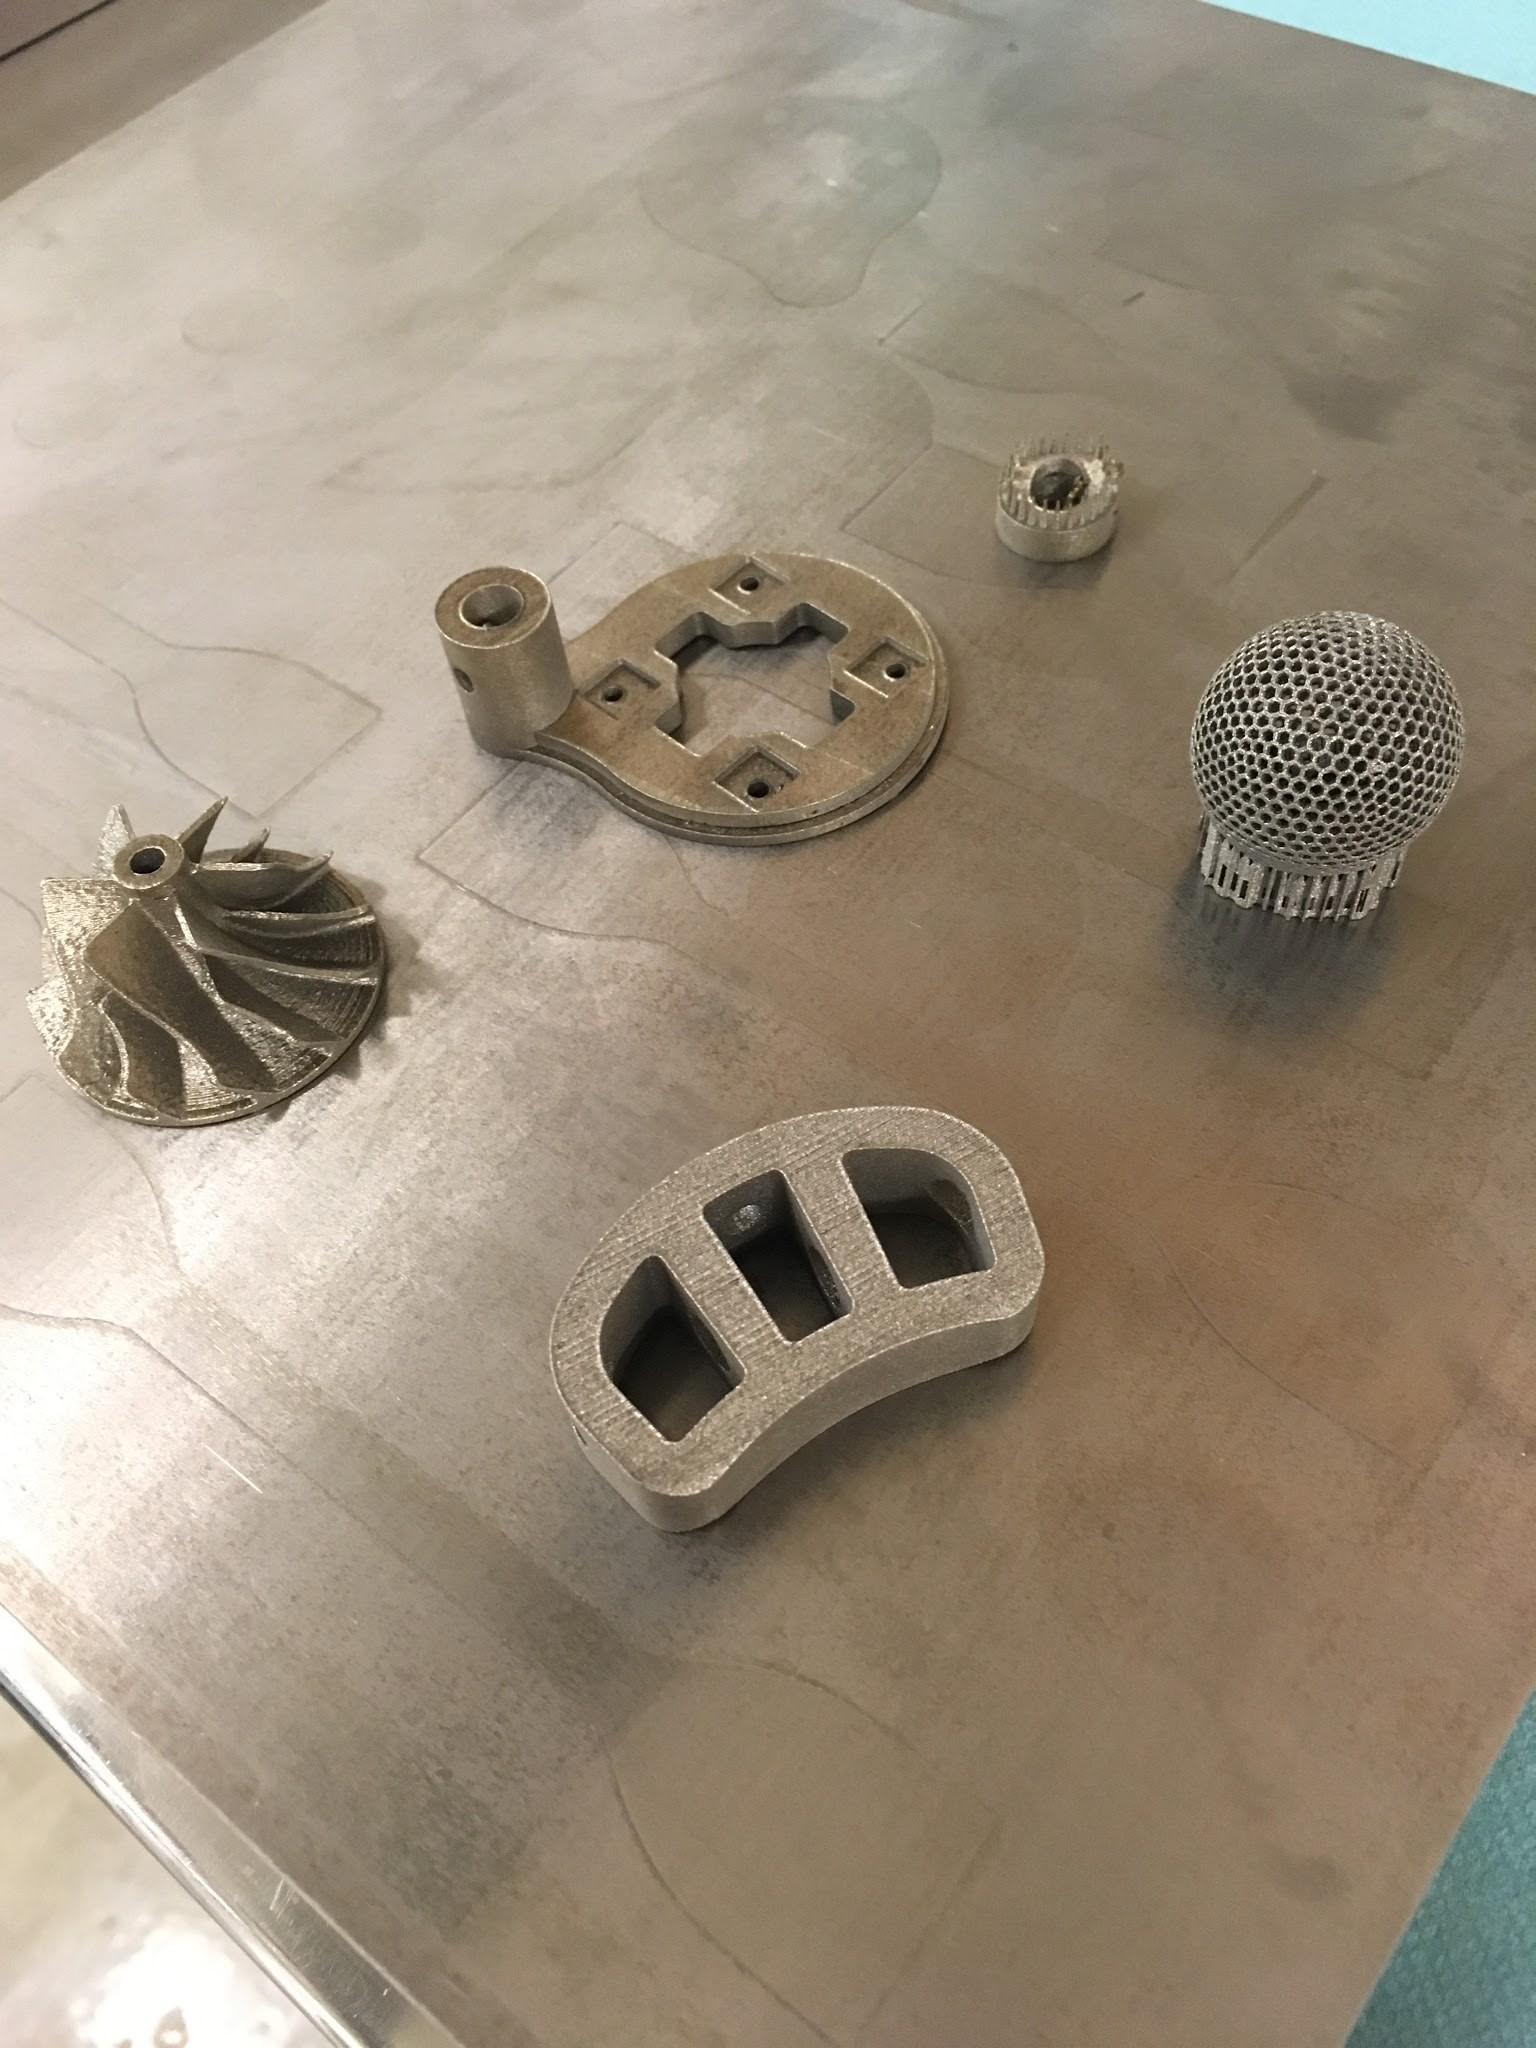 Printed parts on a titanium printing platform. From left to right, impeller, spinal fusion cage, brain electrode holder, ultrasound transducer electrode and metallic sphere with hexagonal mesh.